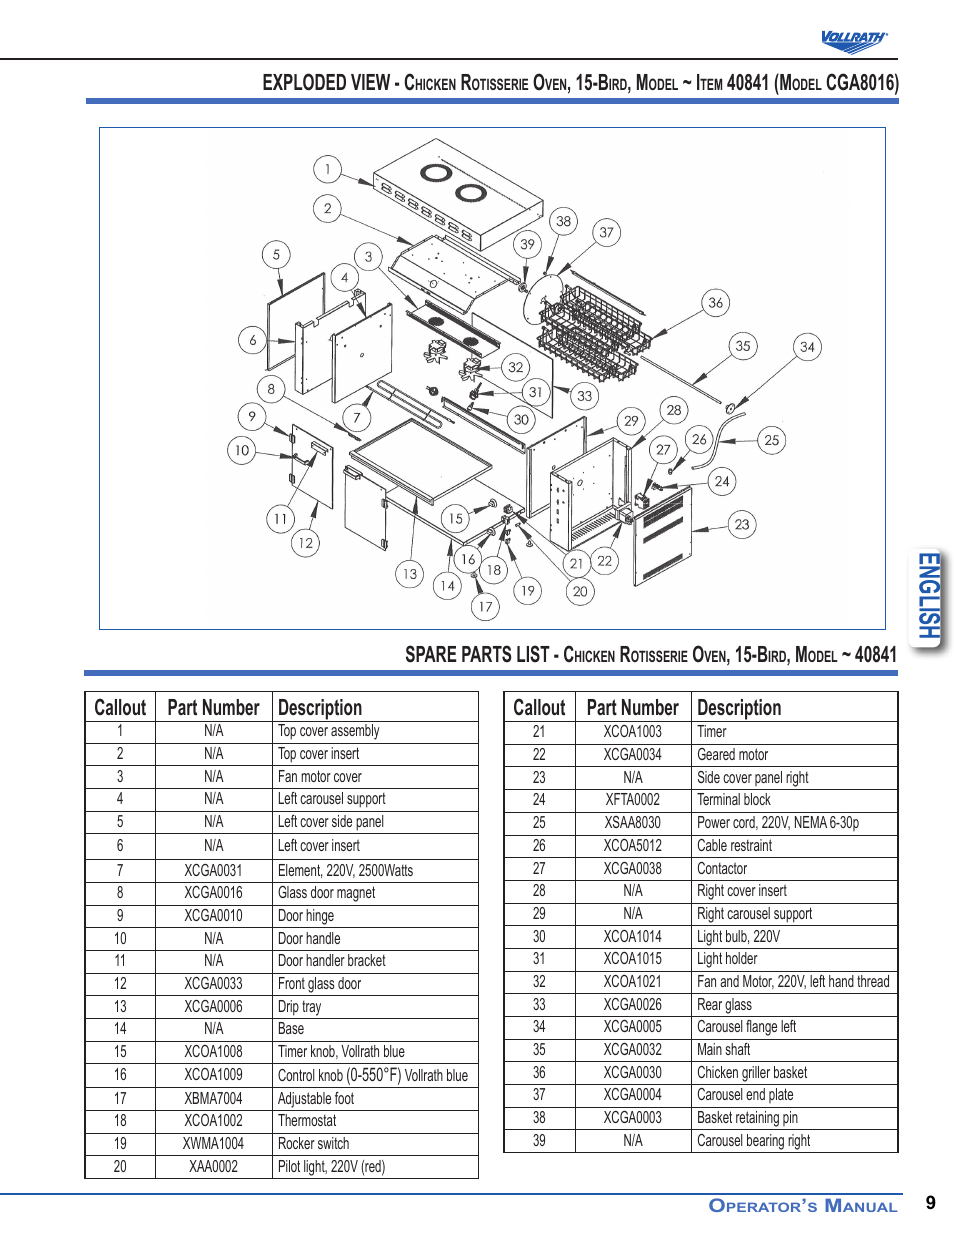 English callout part number description exploded view c english callout part number description exploded view c cga8016 spare parts ccuart Choice Image